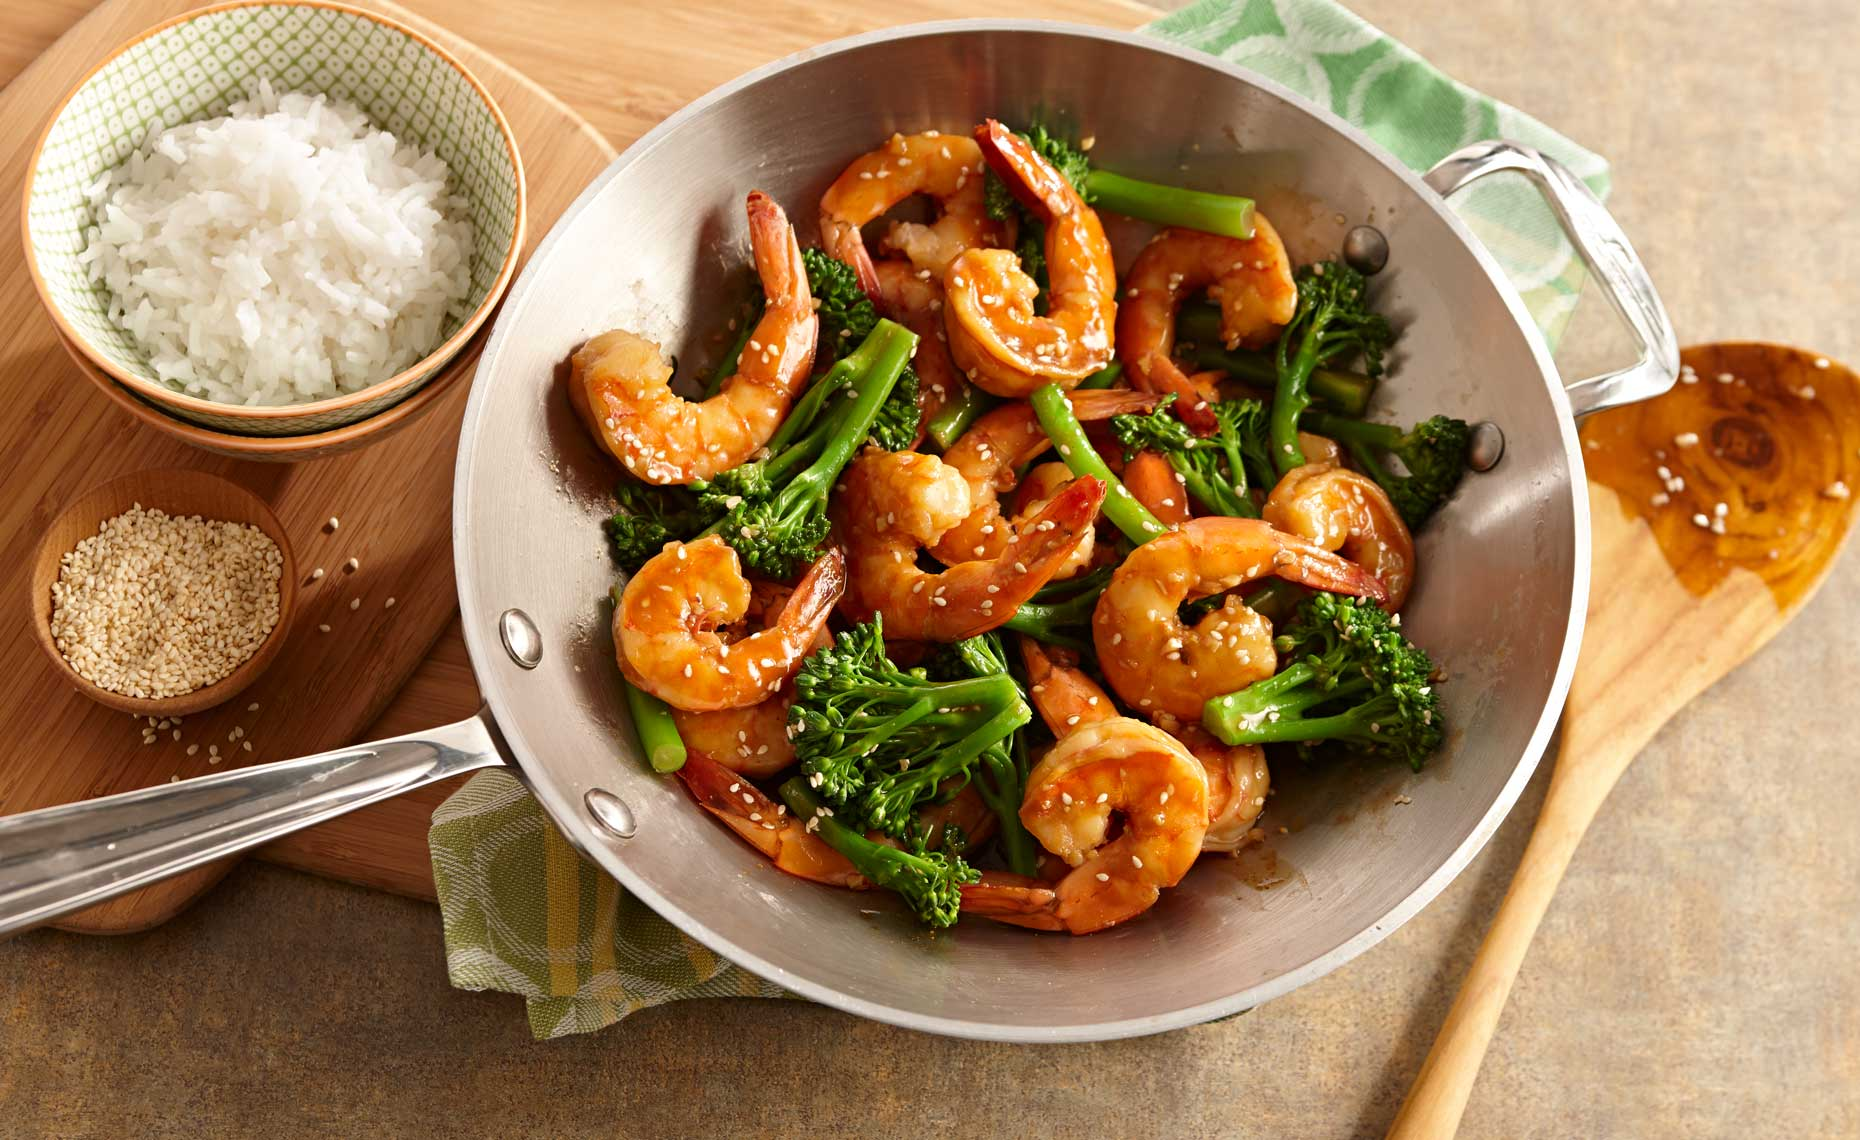 seafood-photographers-shrimp-broccoli-stirfry-23